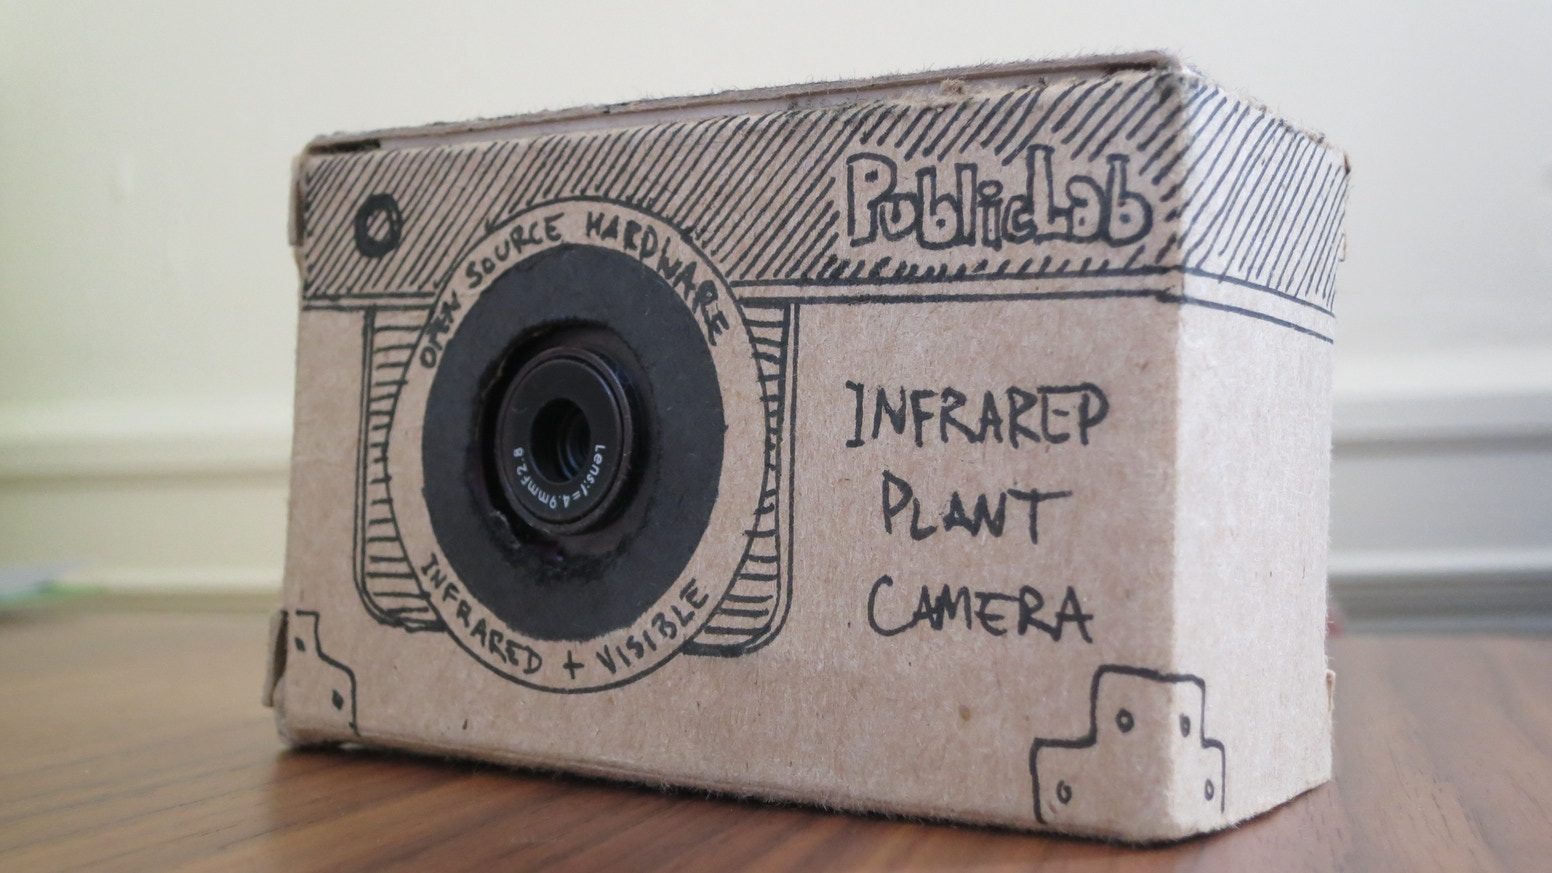 A simple, cheap infrared camera which can measure plant health -- for geek gardeners, farmers, and open source DIY scientists.